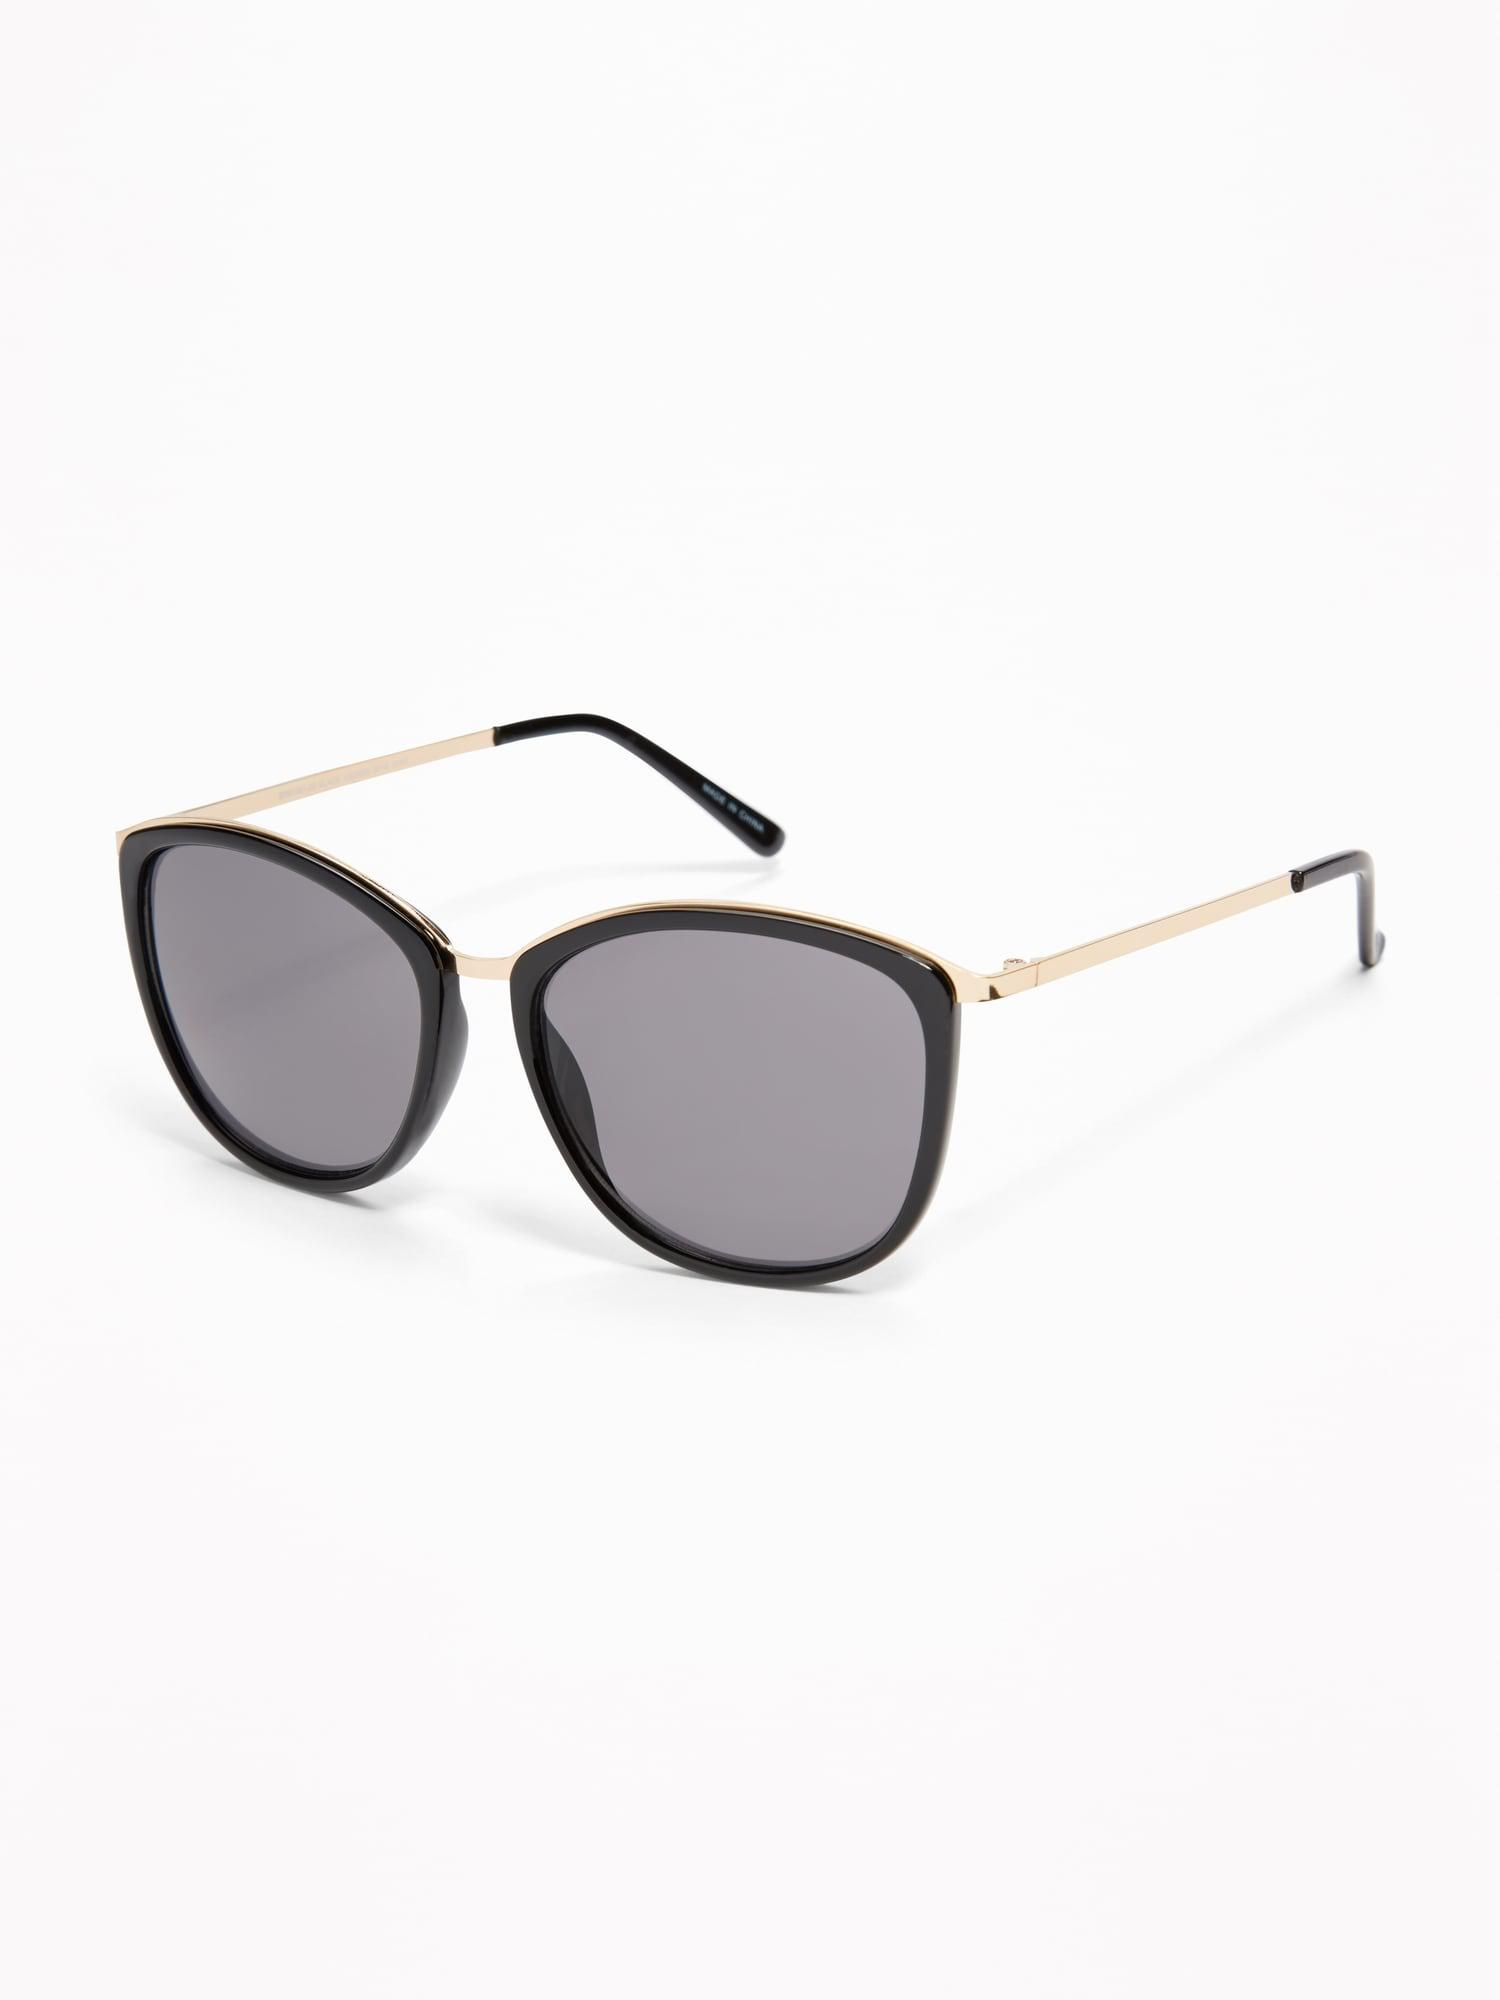 10d67856460d Lyst - Old Navy Mixed-material Sunglasses in Black